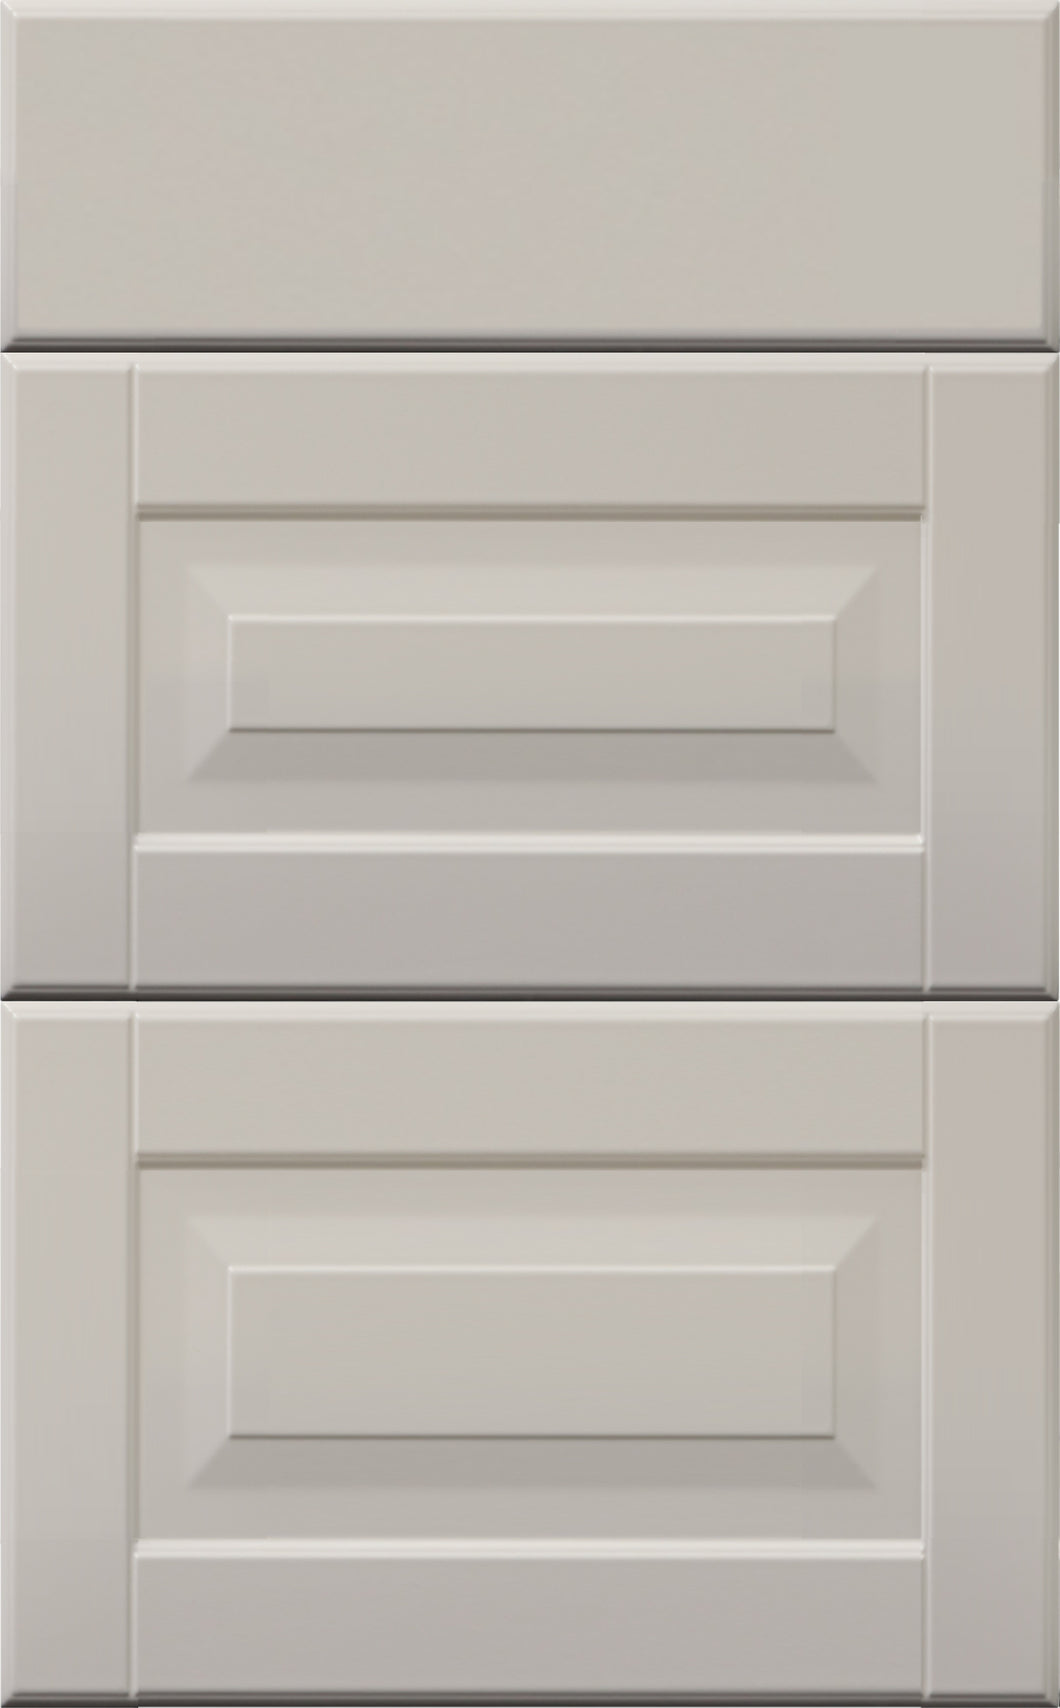 Livia Drawer Fronts - 3 Drawer Set